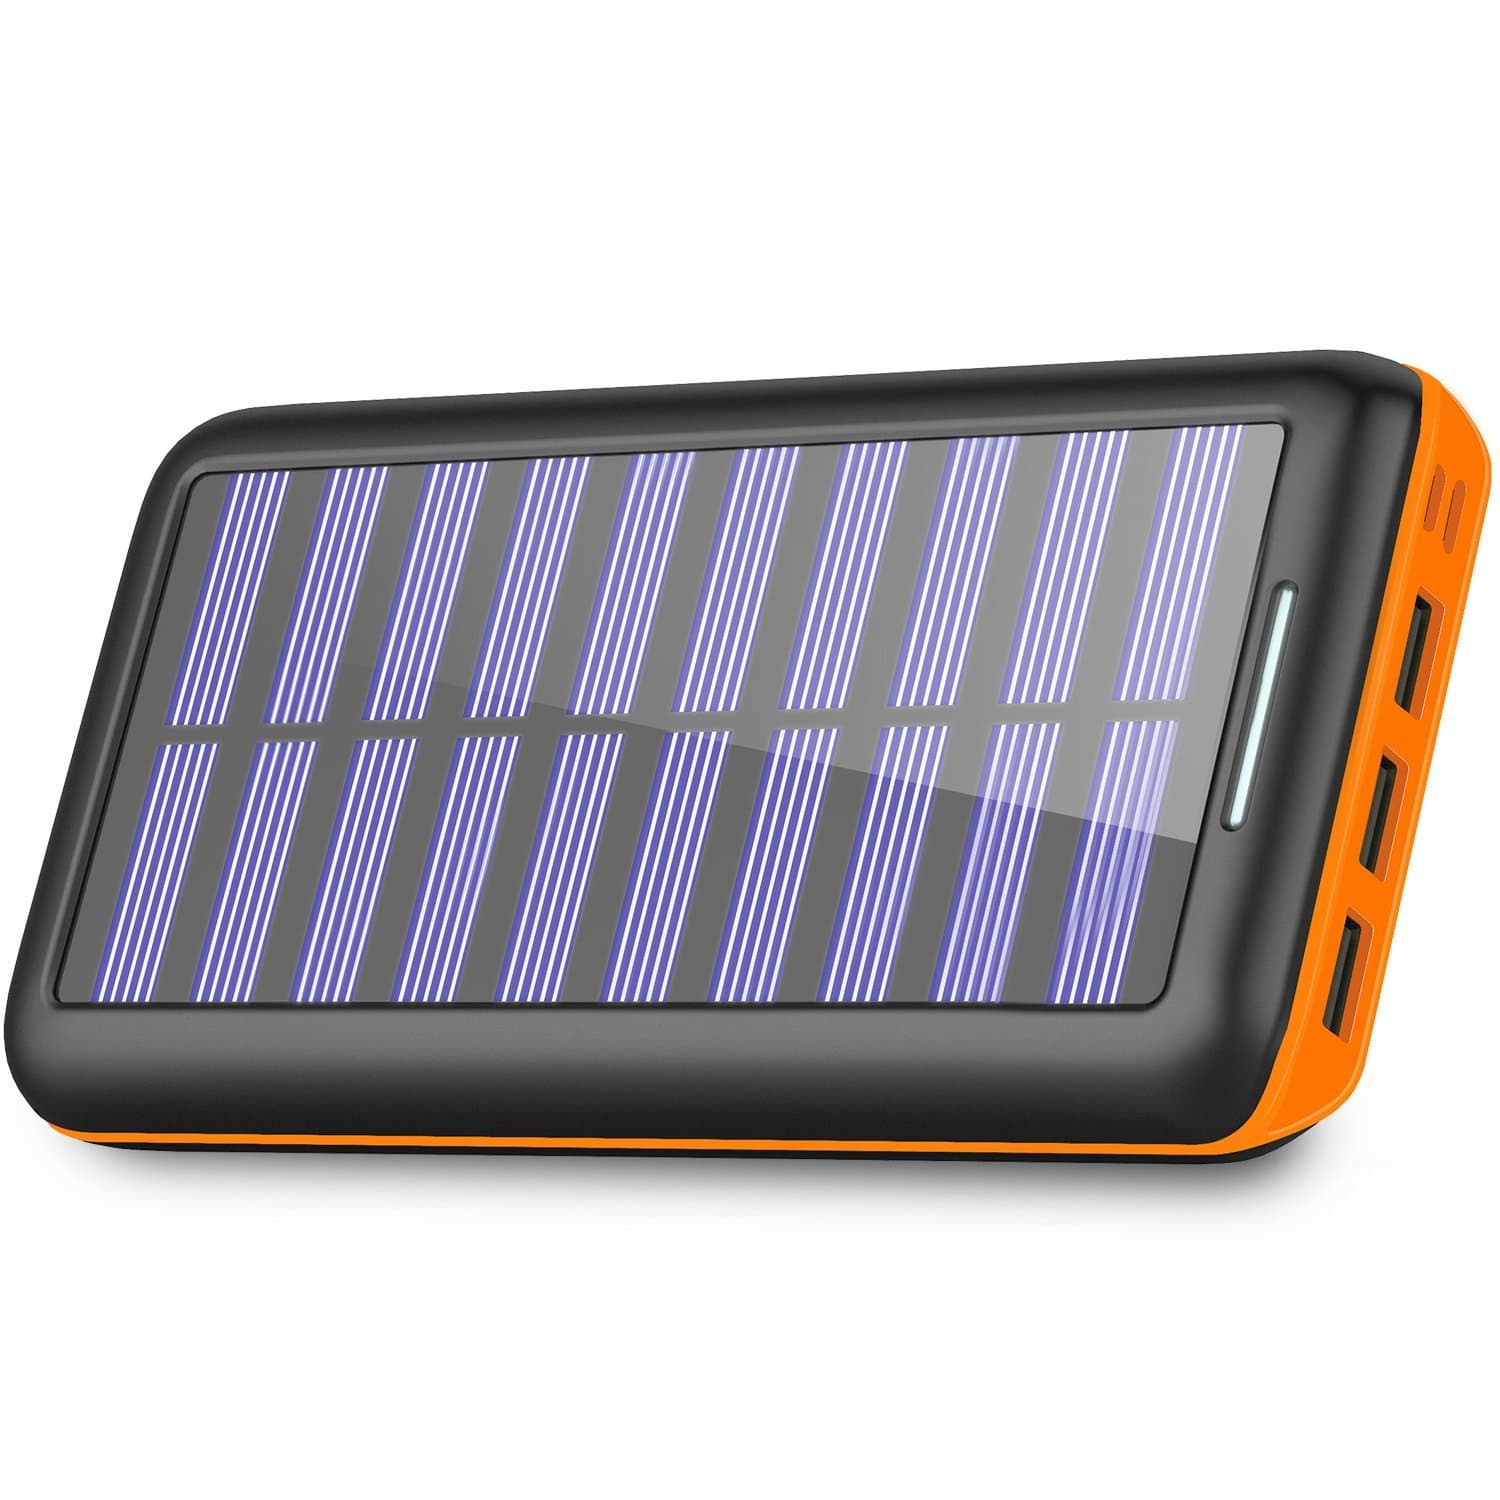 Top 10 Best Solar Power Bank Charger In 2018 Buying Guide